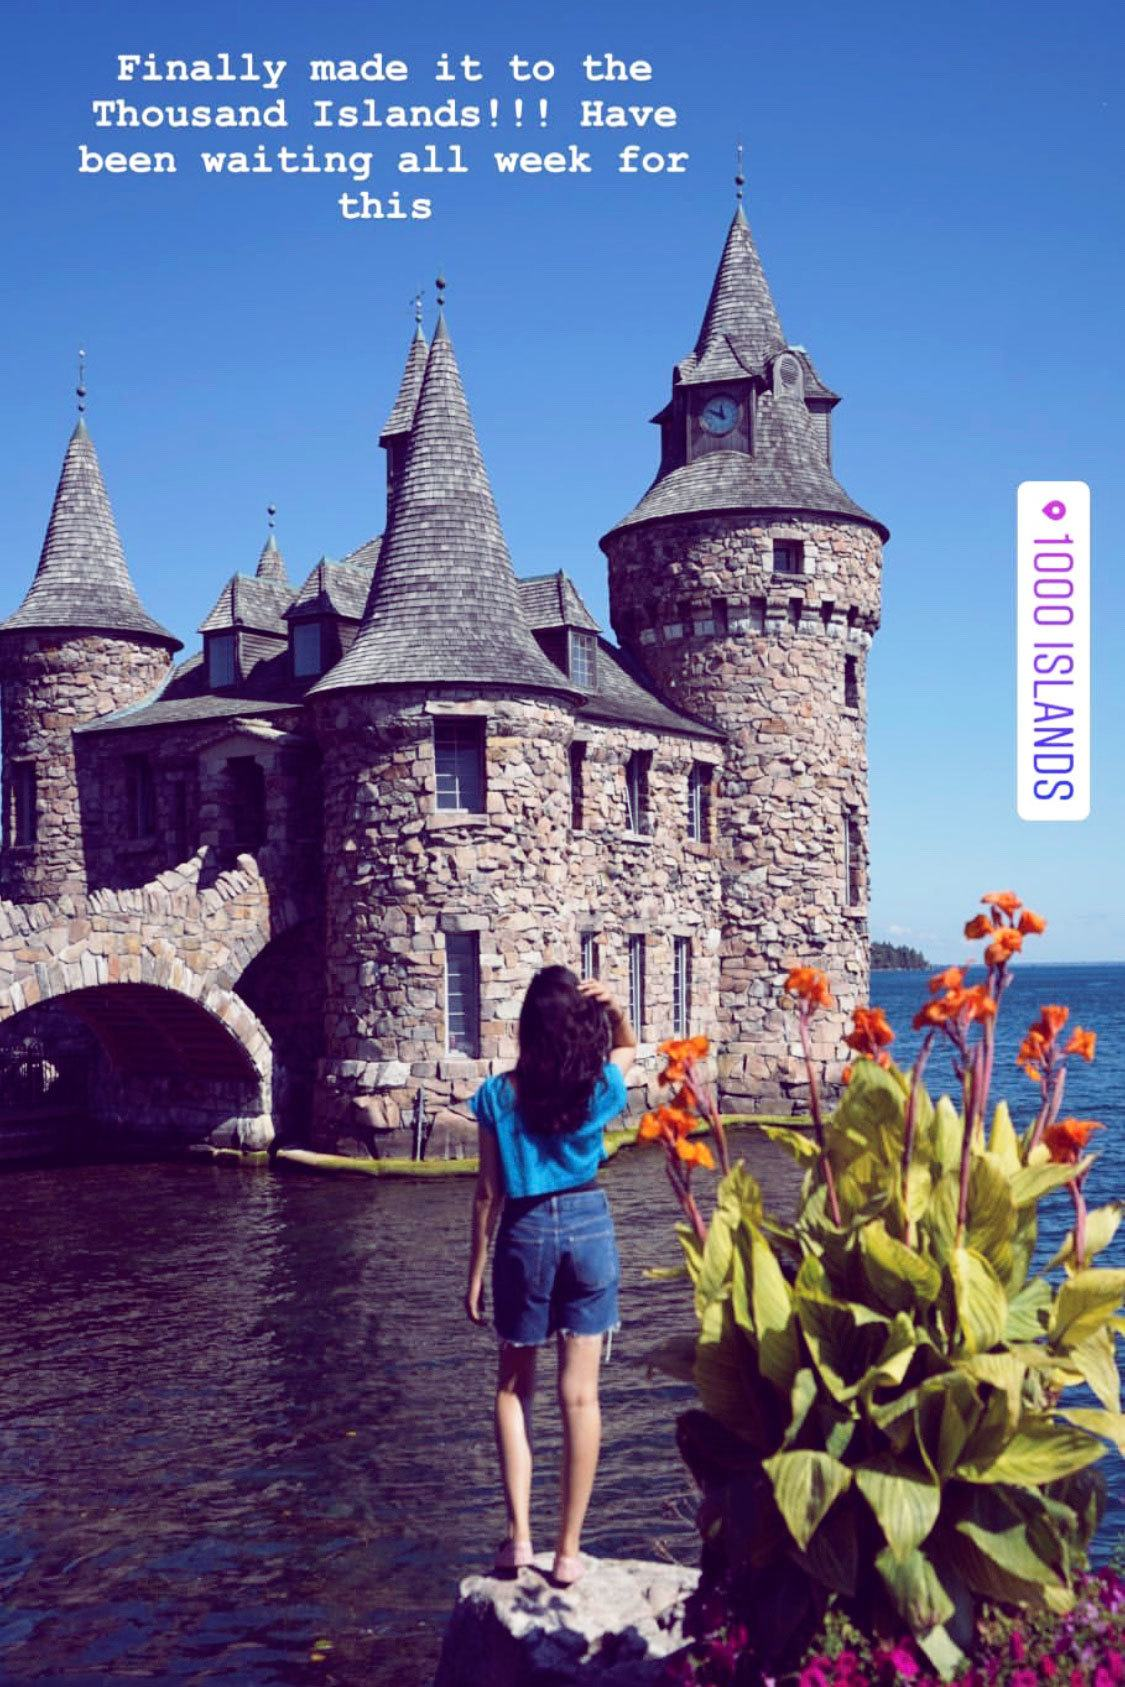 boldt-castle-thousand-islands